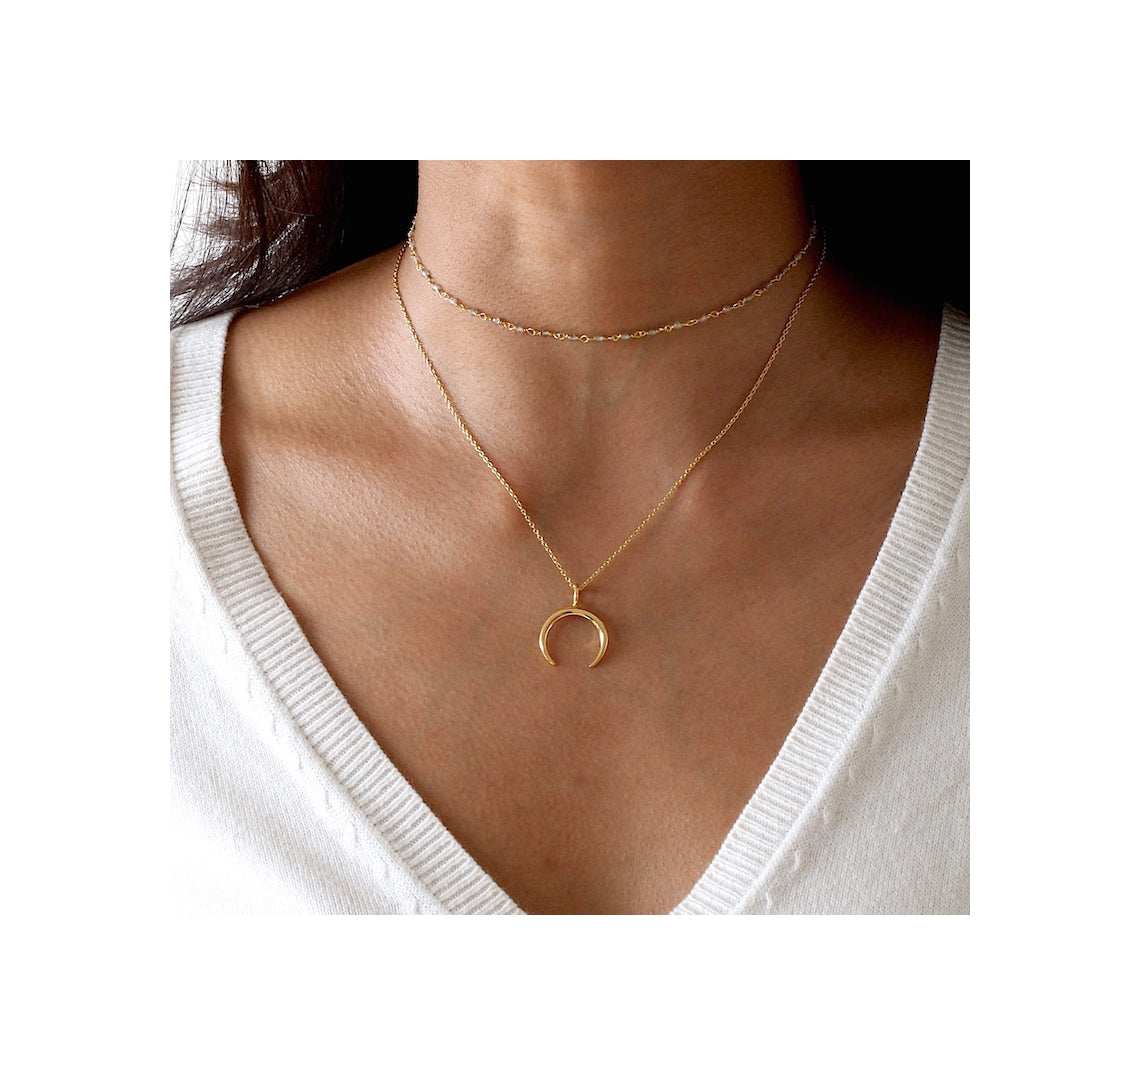 Gold Waning Crescent Moon Necklace